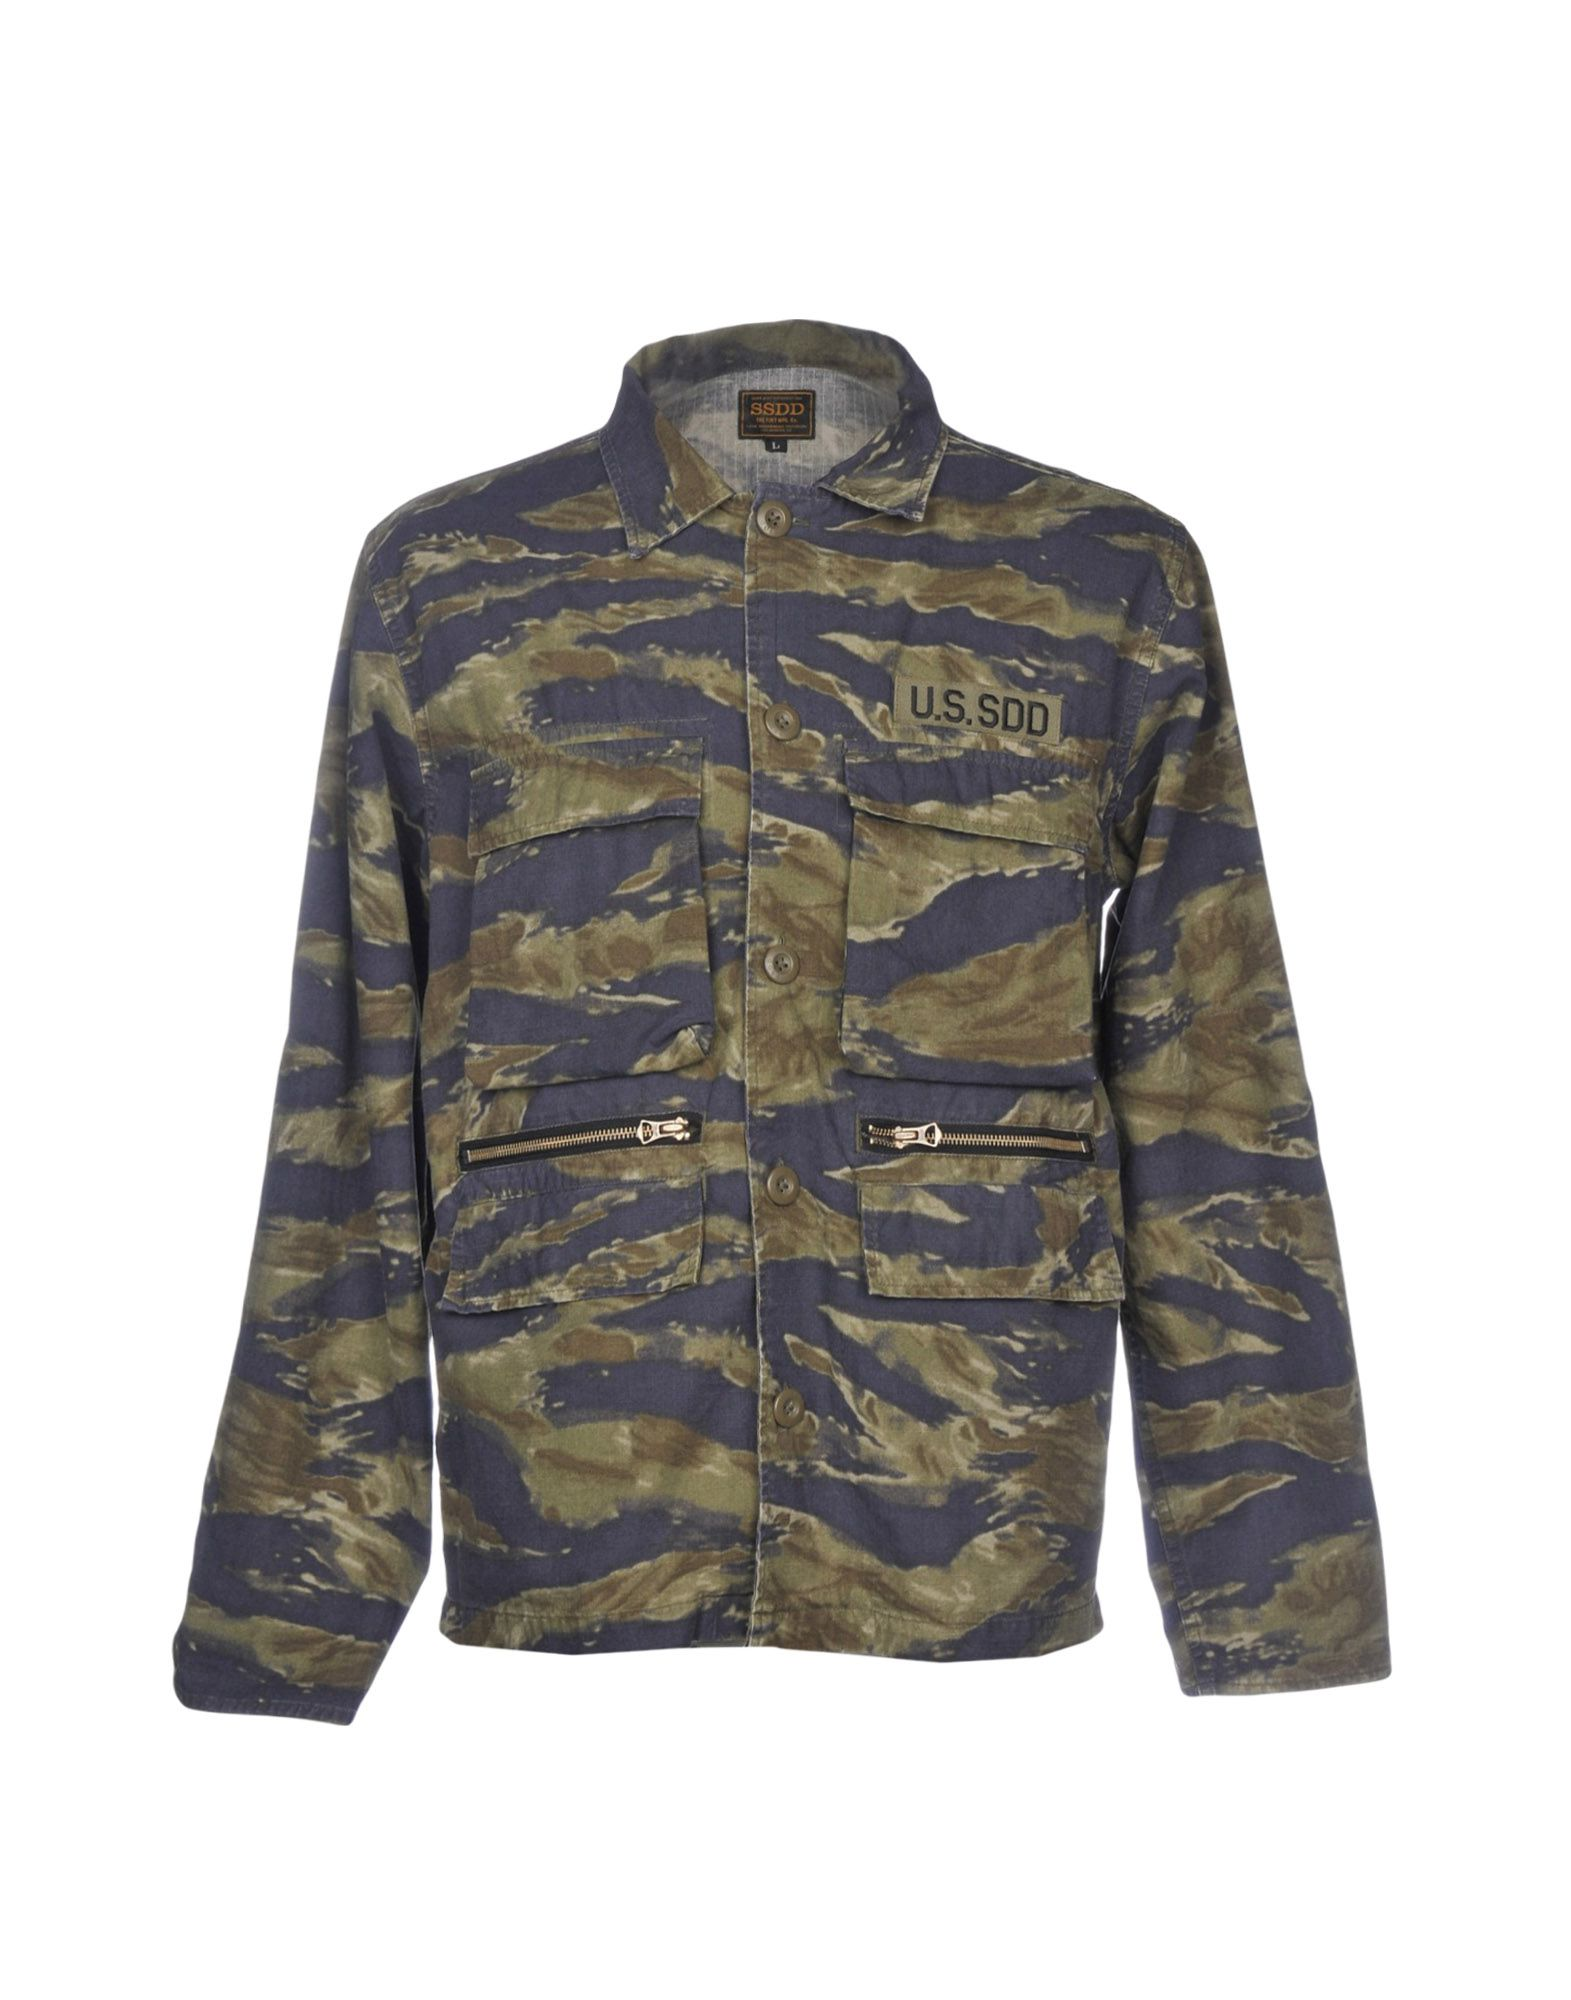 FUCT SSDD Jacket in Military Green